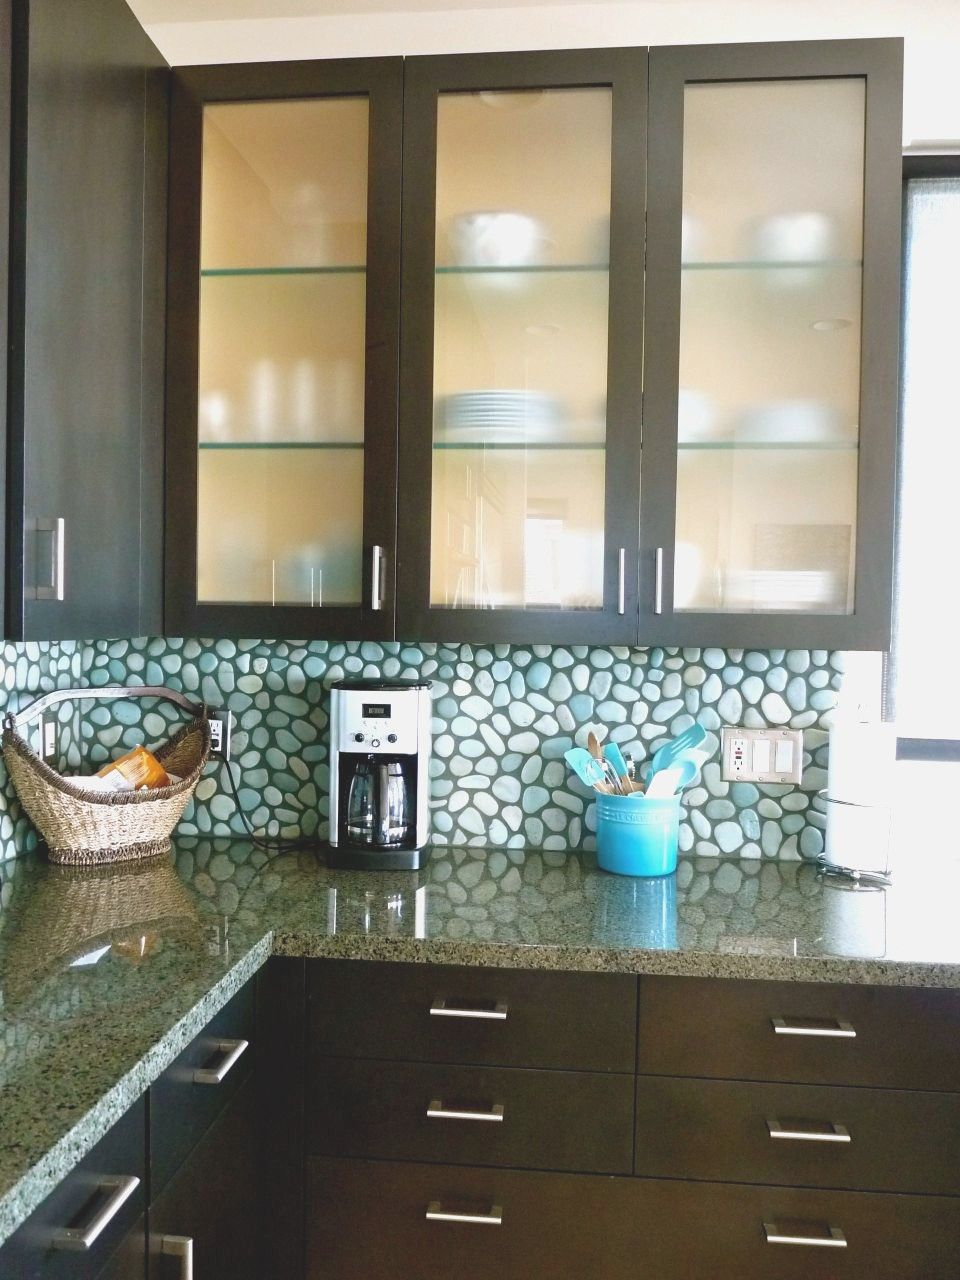 glass inserts for kitchen cabinets cheap glass inserts for kitchen cabinets decorative glass on kitchen cabinets glass inserts id=74771